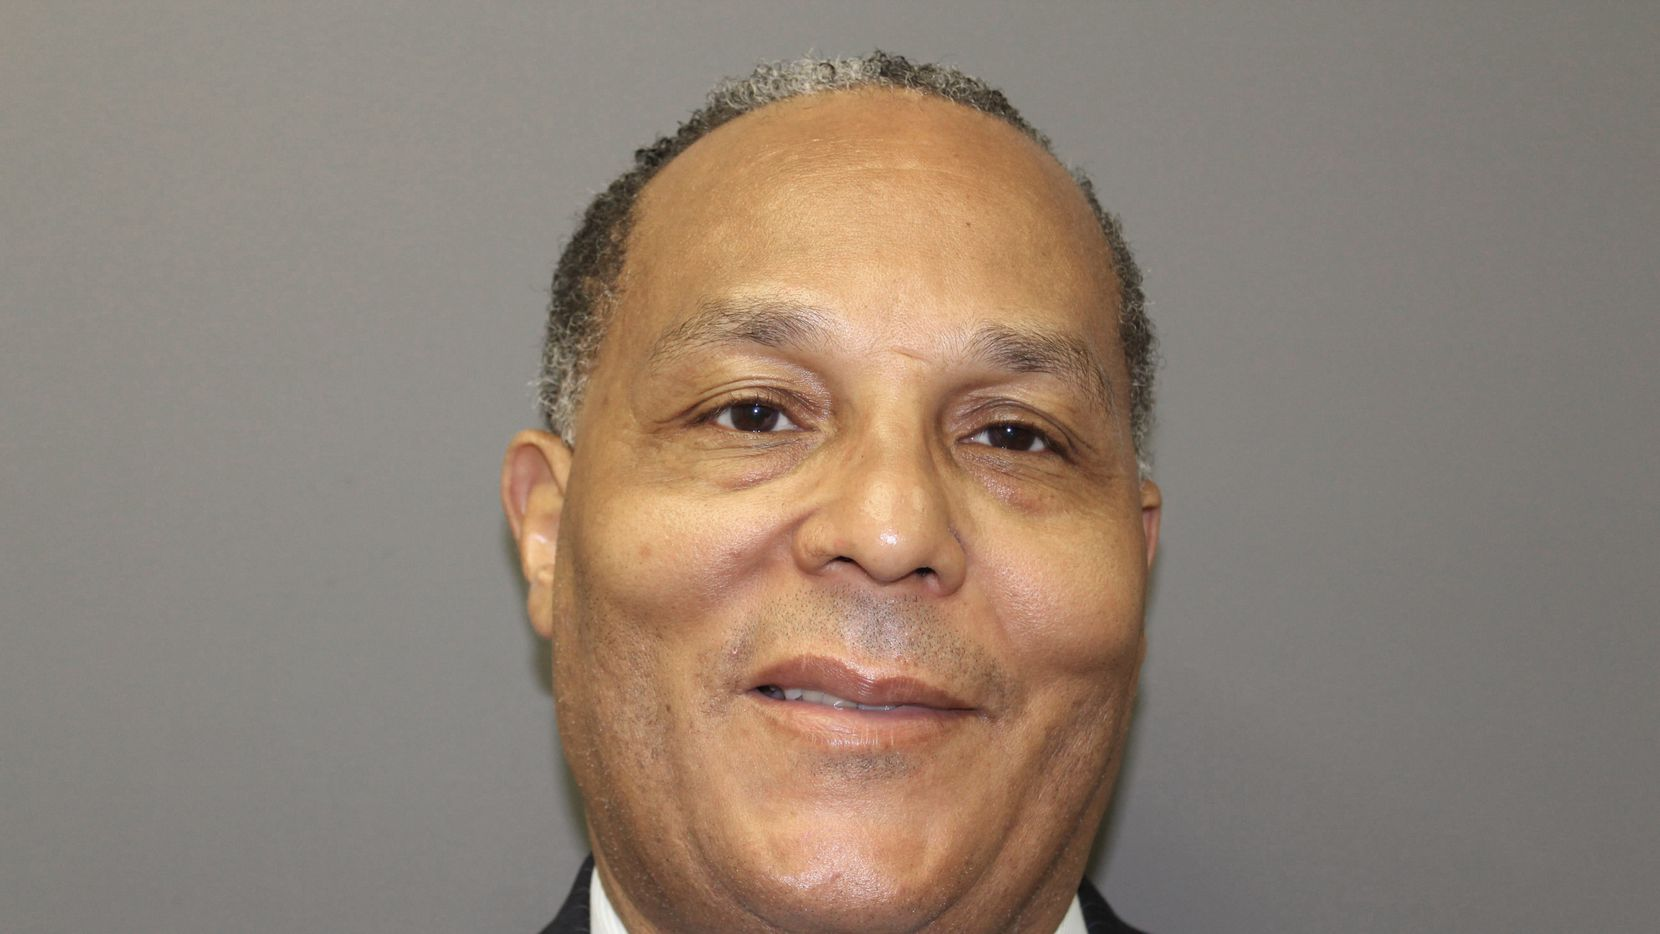 Dallas City Council member Kevin Felder, shown in a booking photo taken Feb. 26, 2019, at the Dallas County Jail.